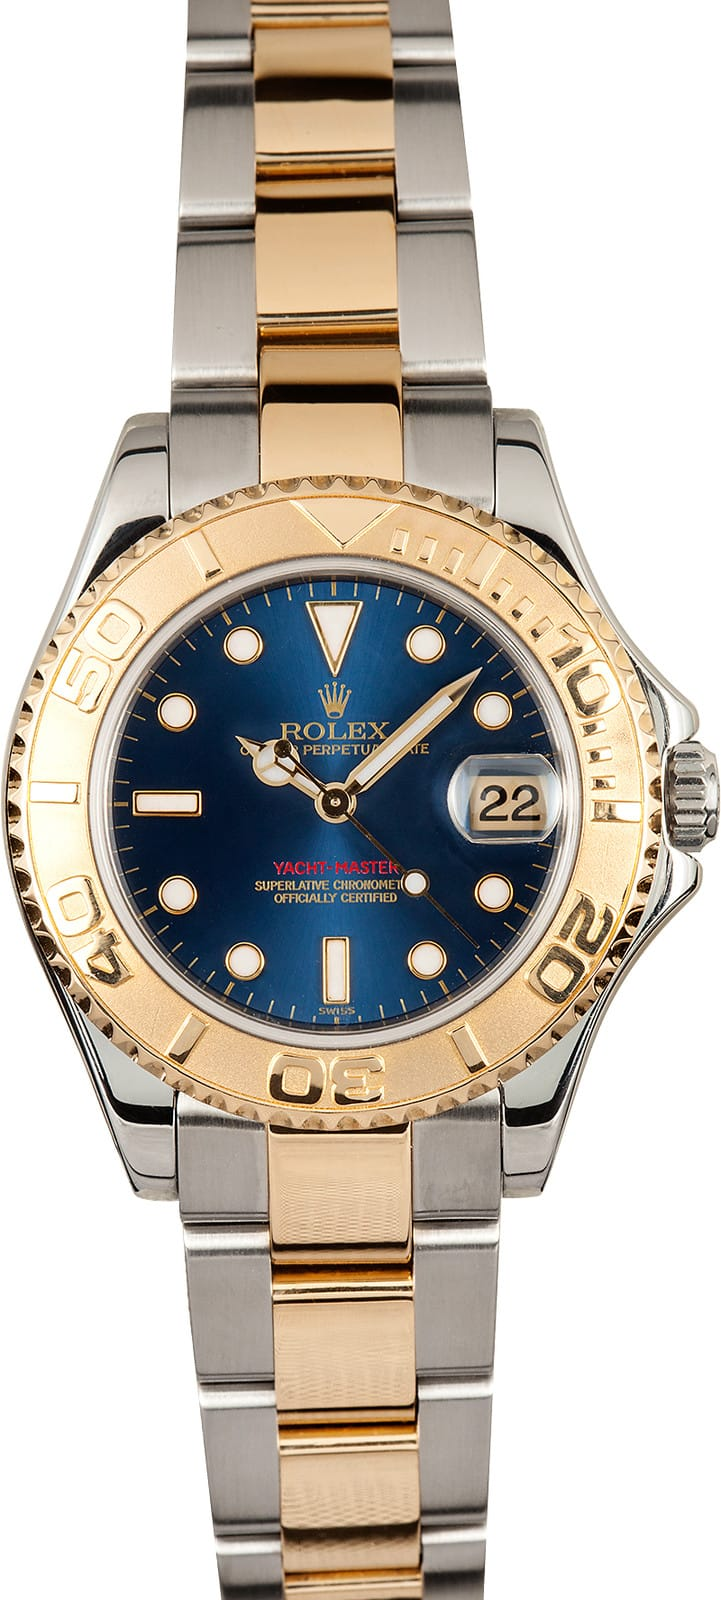 Daytona Rolex Watch >> Pre-owned Mid-Size Rolex Yachtmaster 168623 - Buy and Save ...